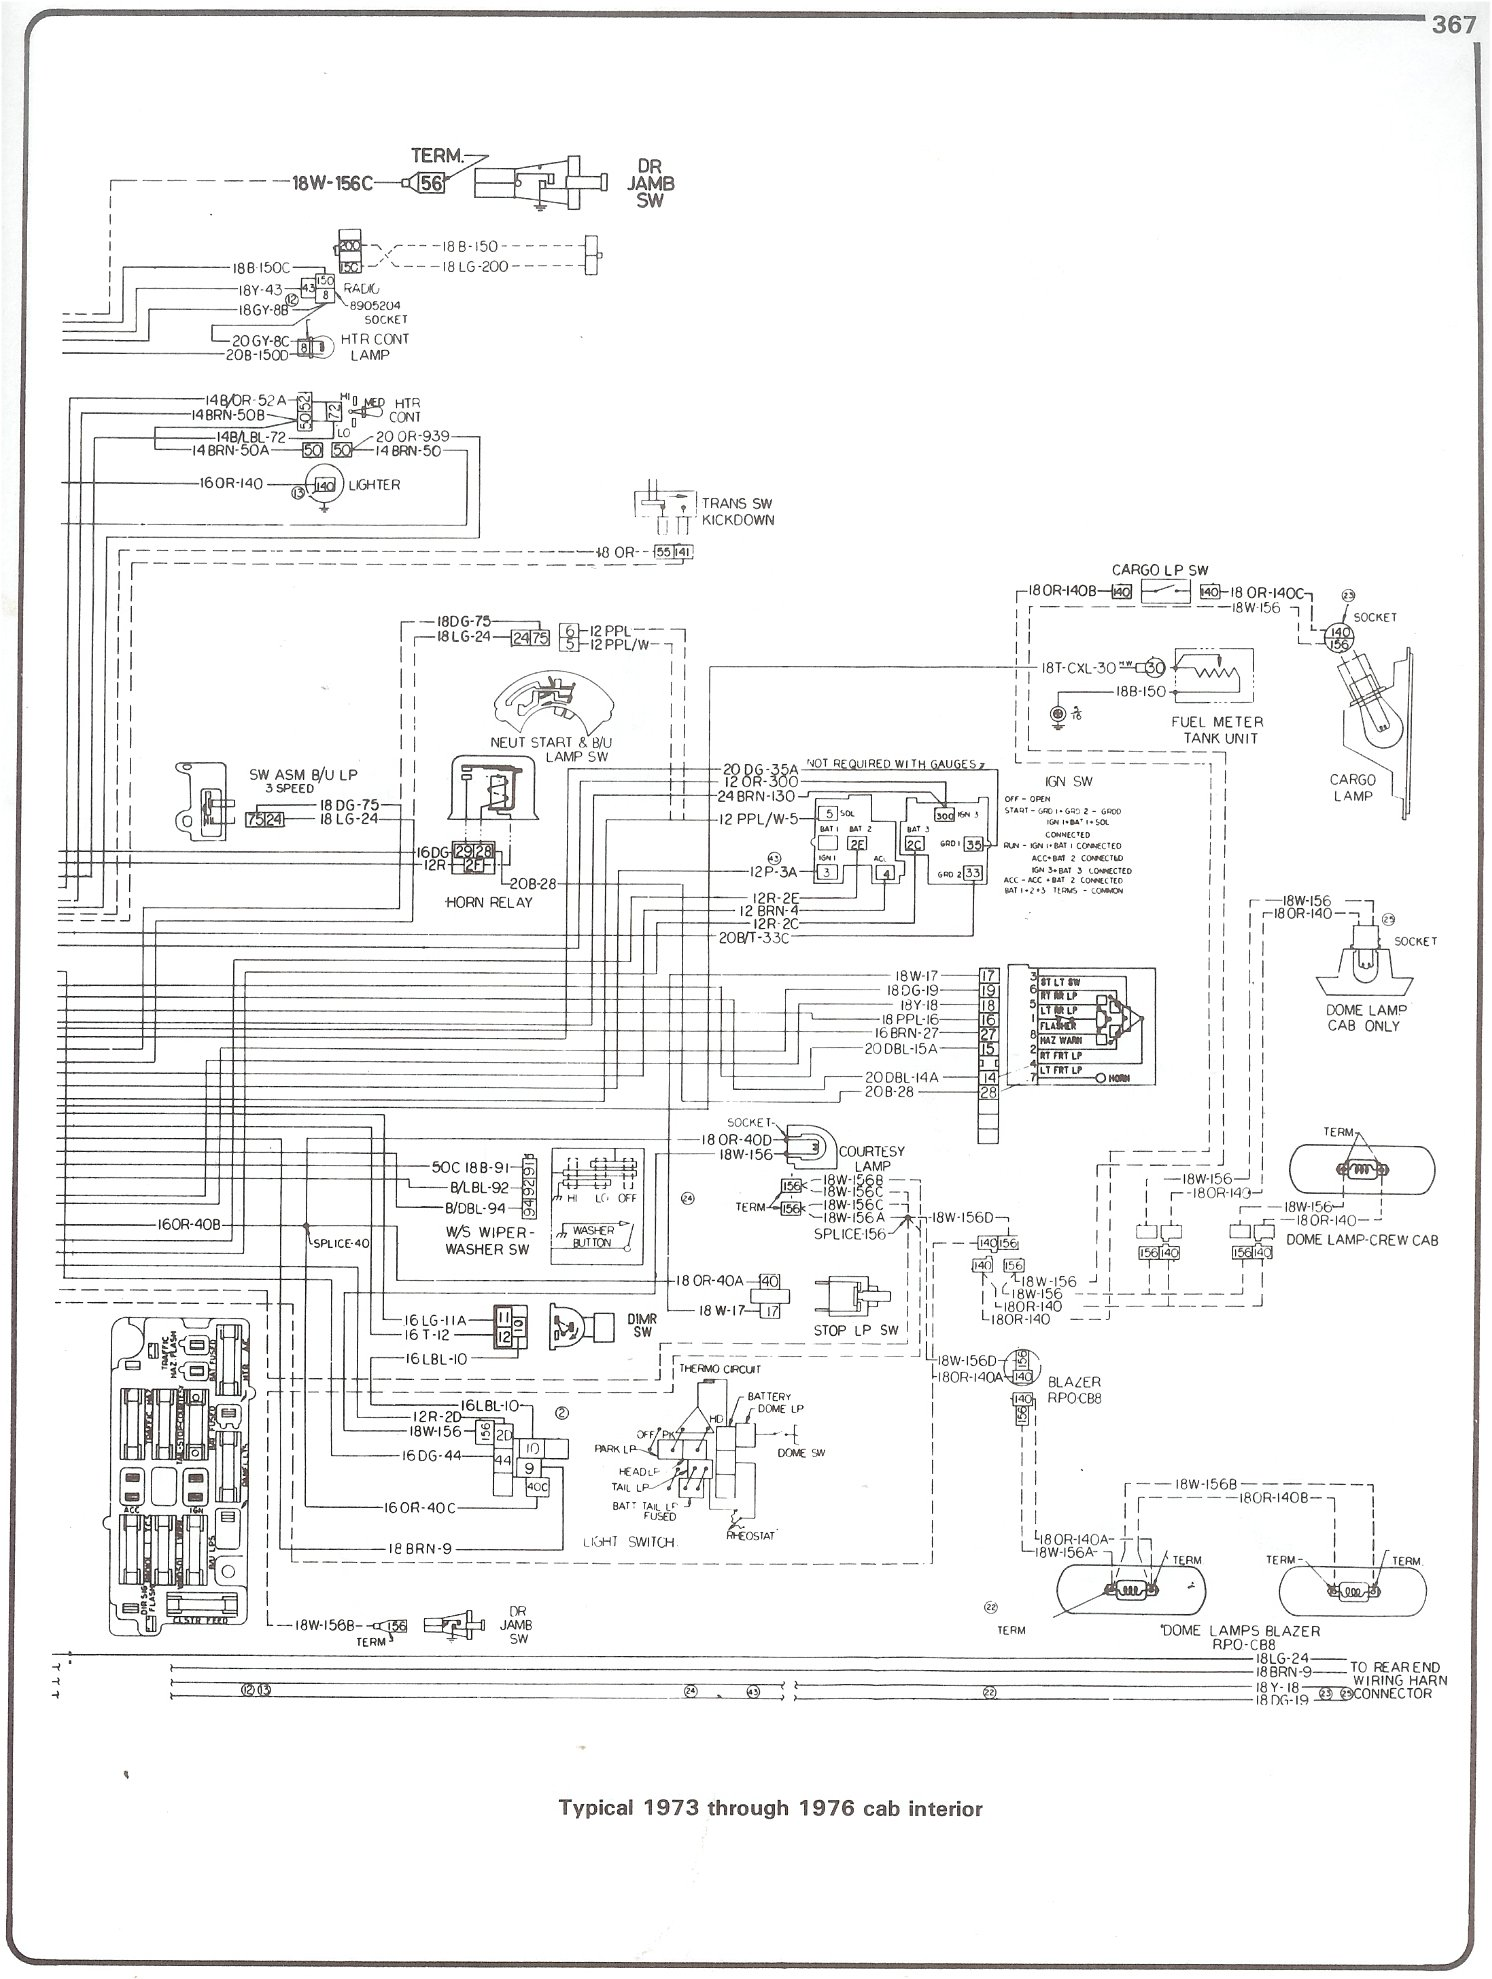 complete 73 87 wiring diagrams 1968 Ford Mustang Wiring Diagram  1973 Mustang Air Conditioning Diagram 1973 Ford Wiring Diagram The Boss Ford Solenoid Wiring Diagram